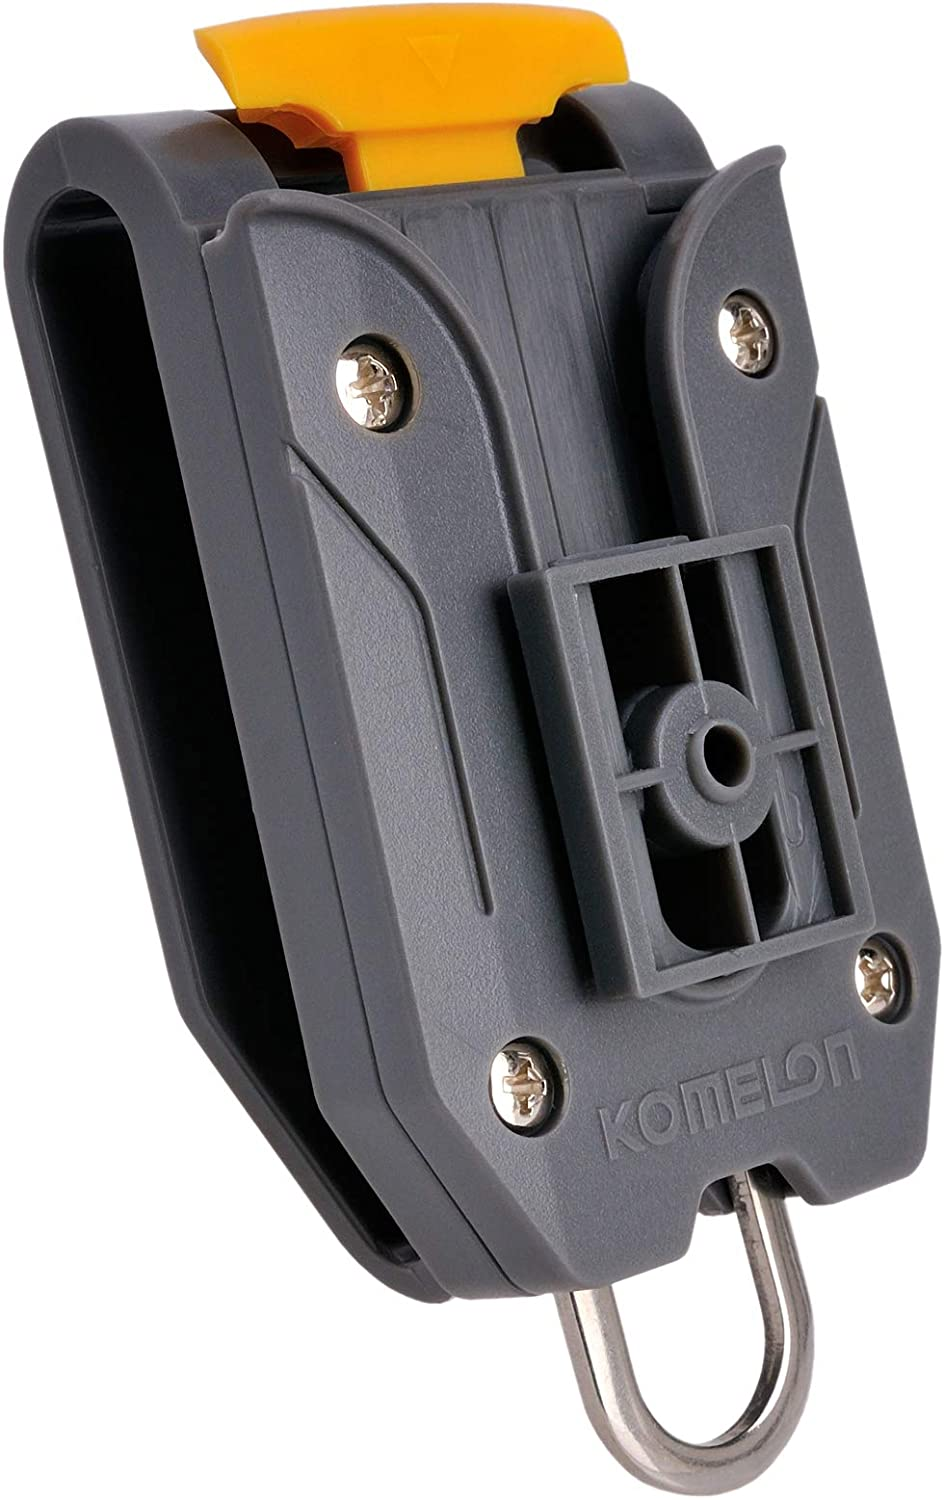 Komelon Belt Clip Holder Quick-Draw Safety Tools for Measuring Measure Tape with English Manual